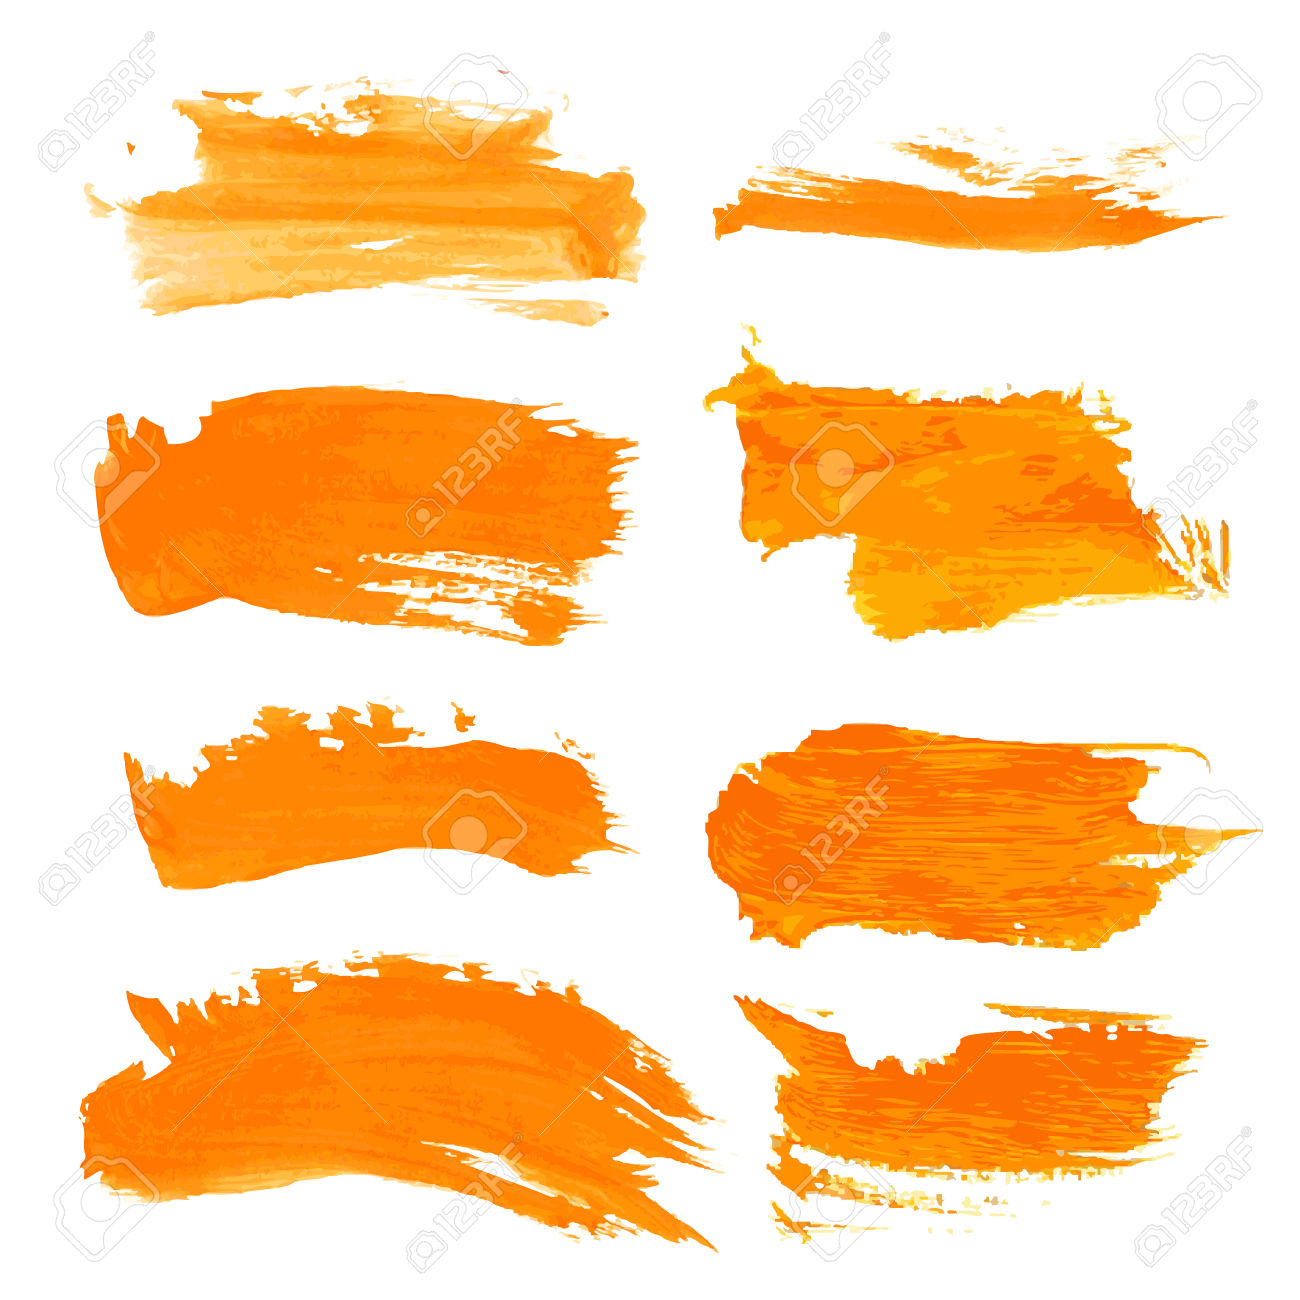 Set Orange Gouashe Realistic Thick Paint Strokes Royalty Free.